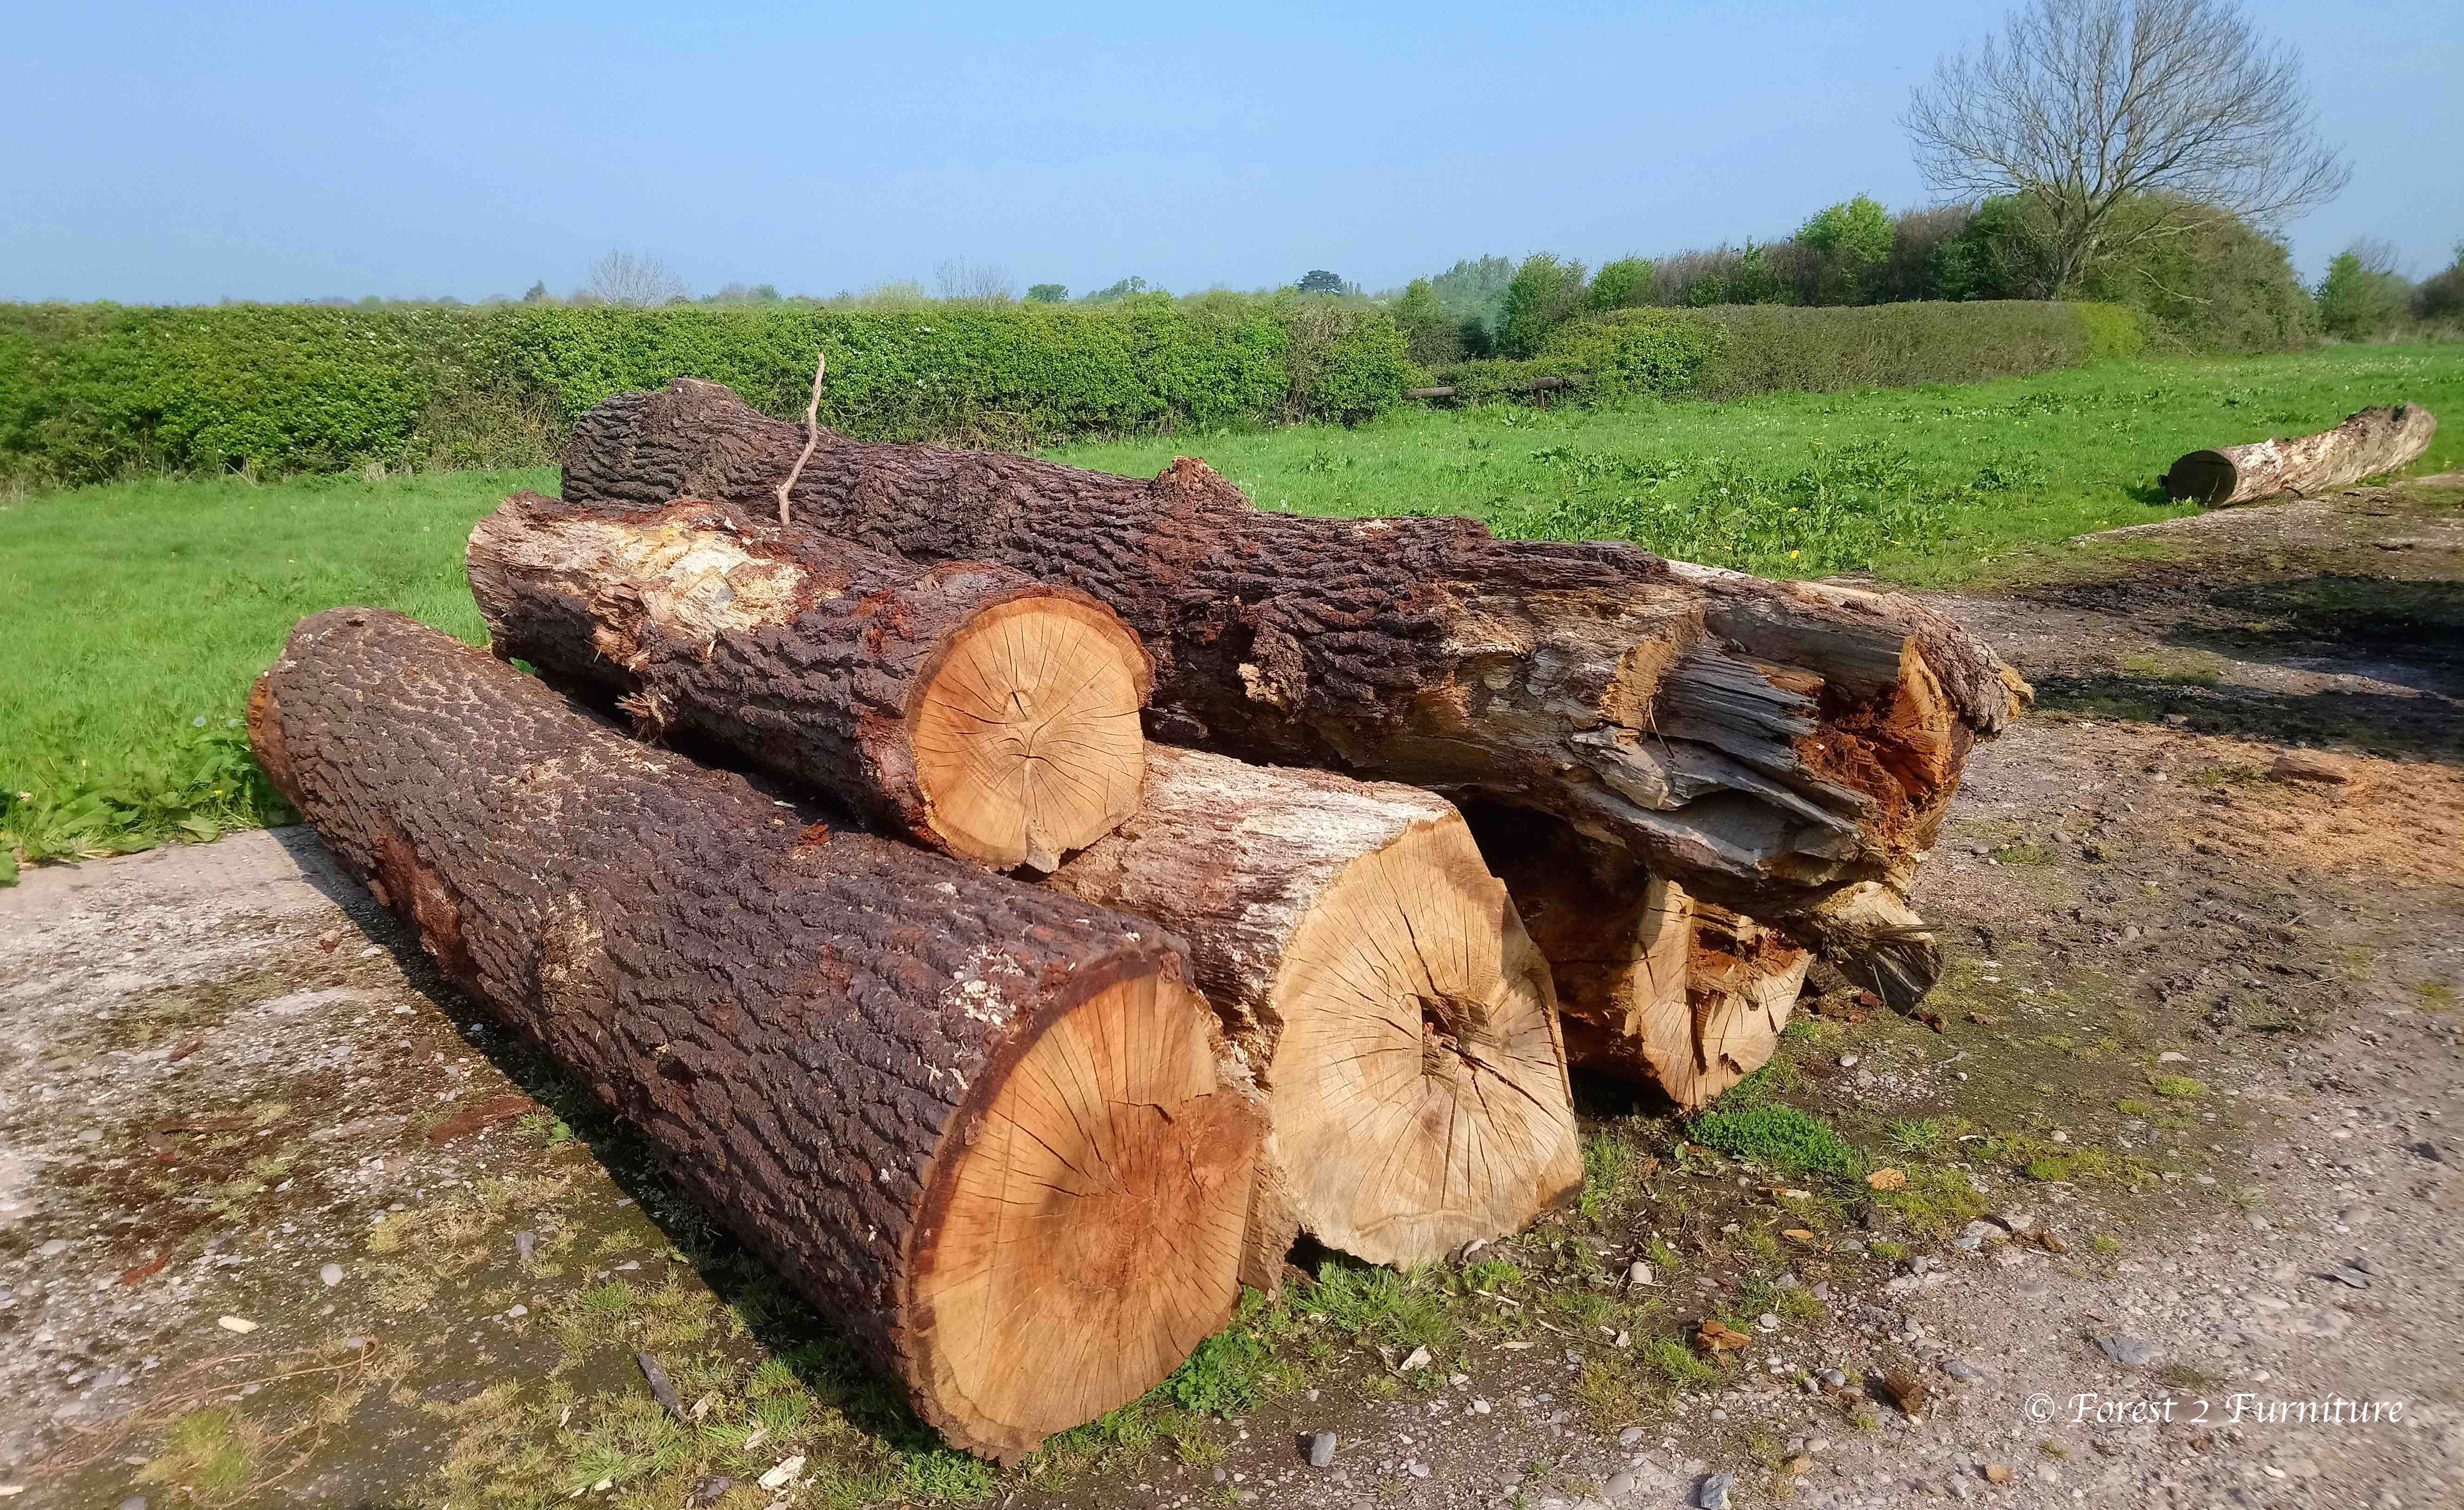 Oak trunks felled 2yrs earlier waiting to be milled